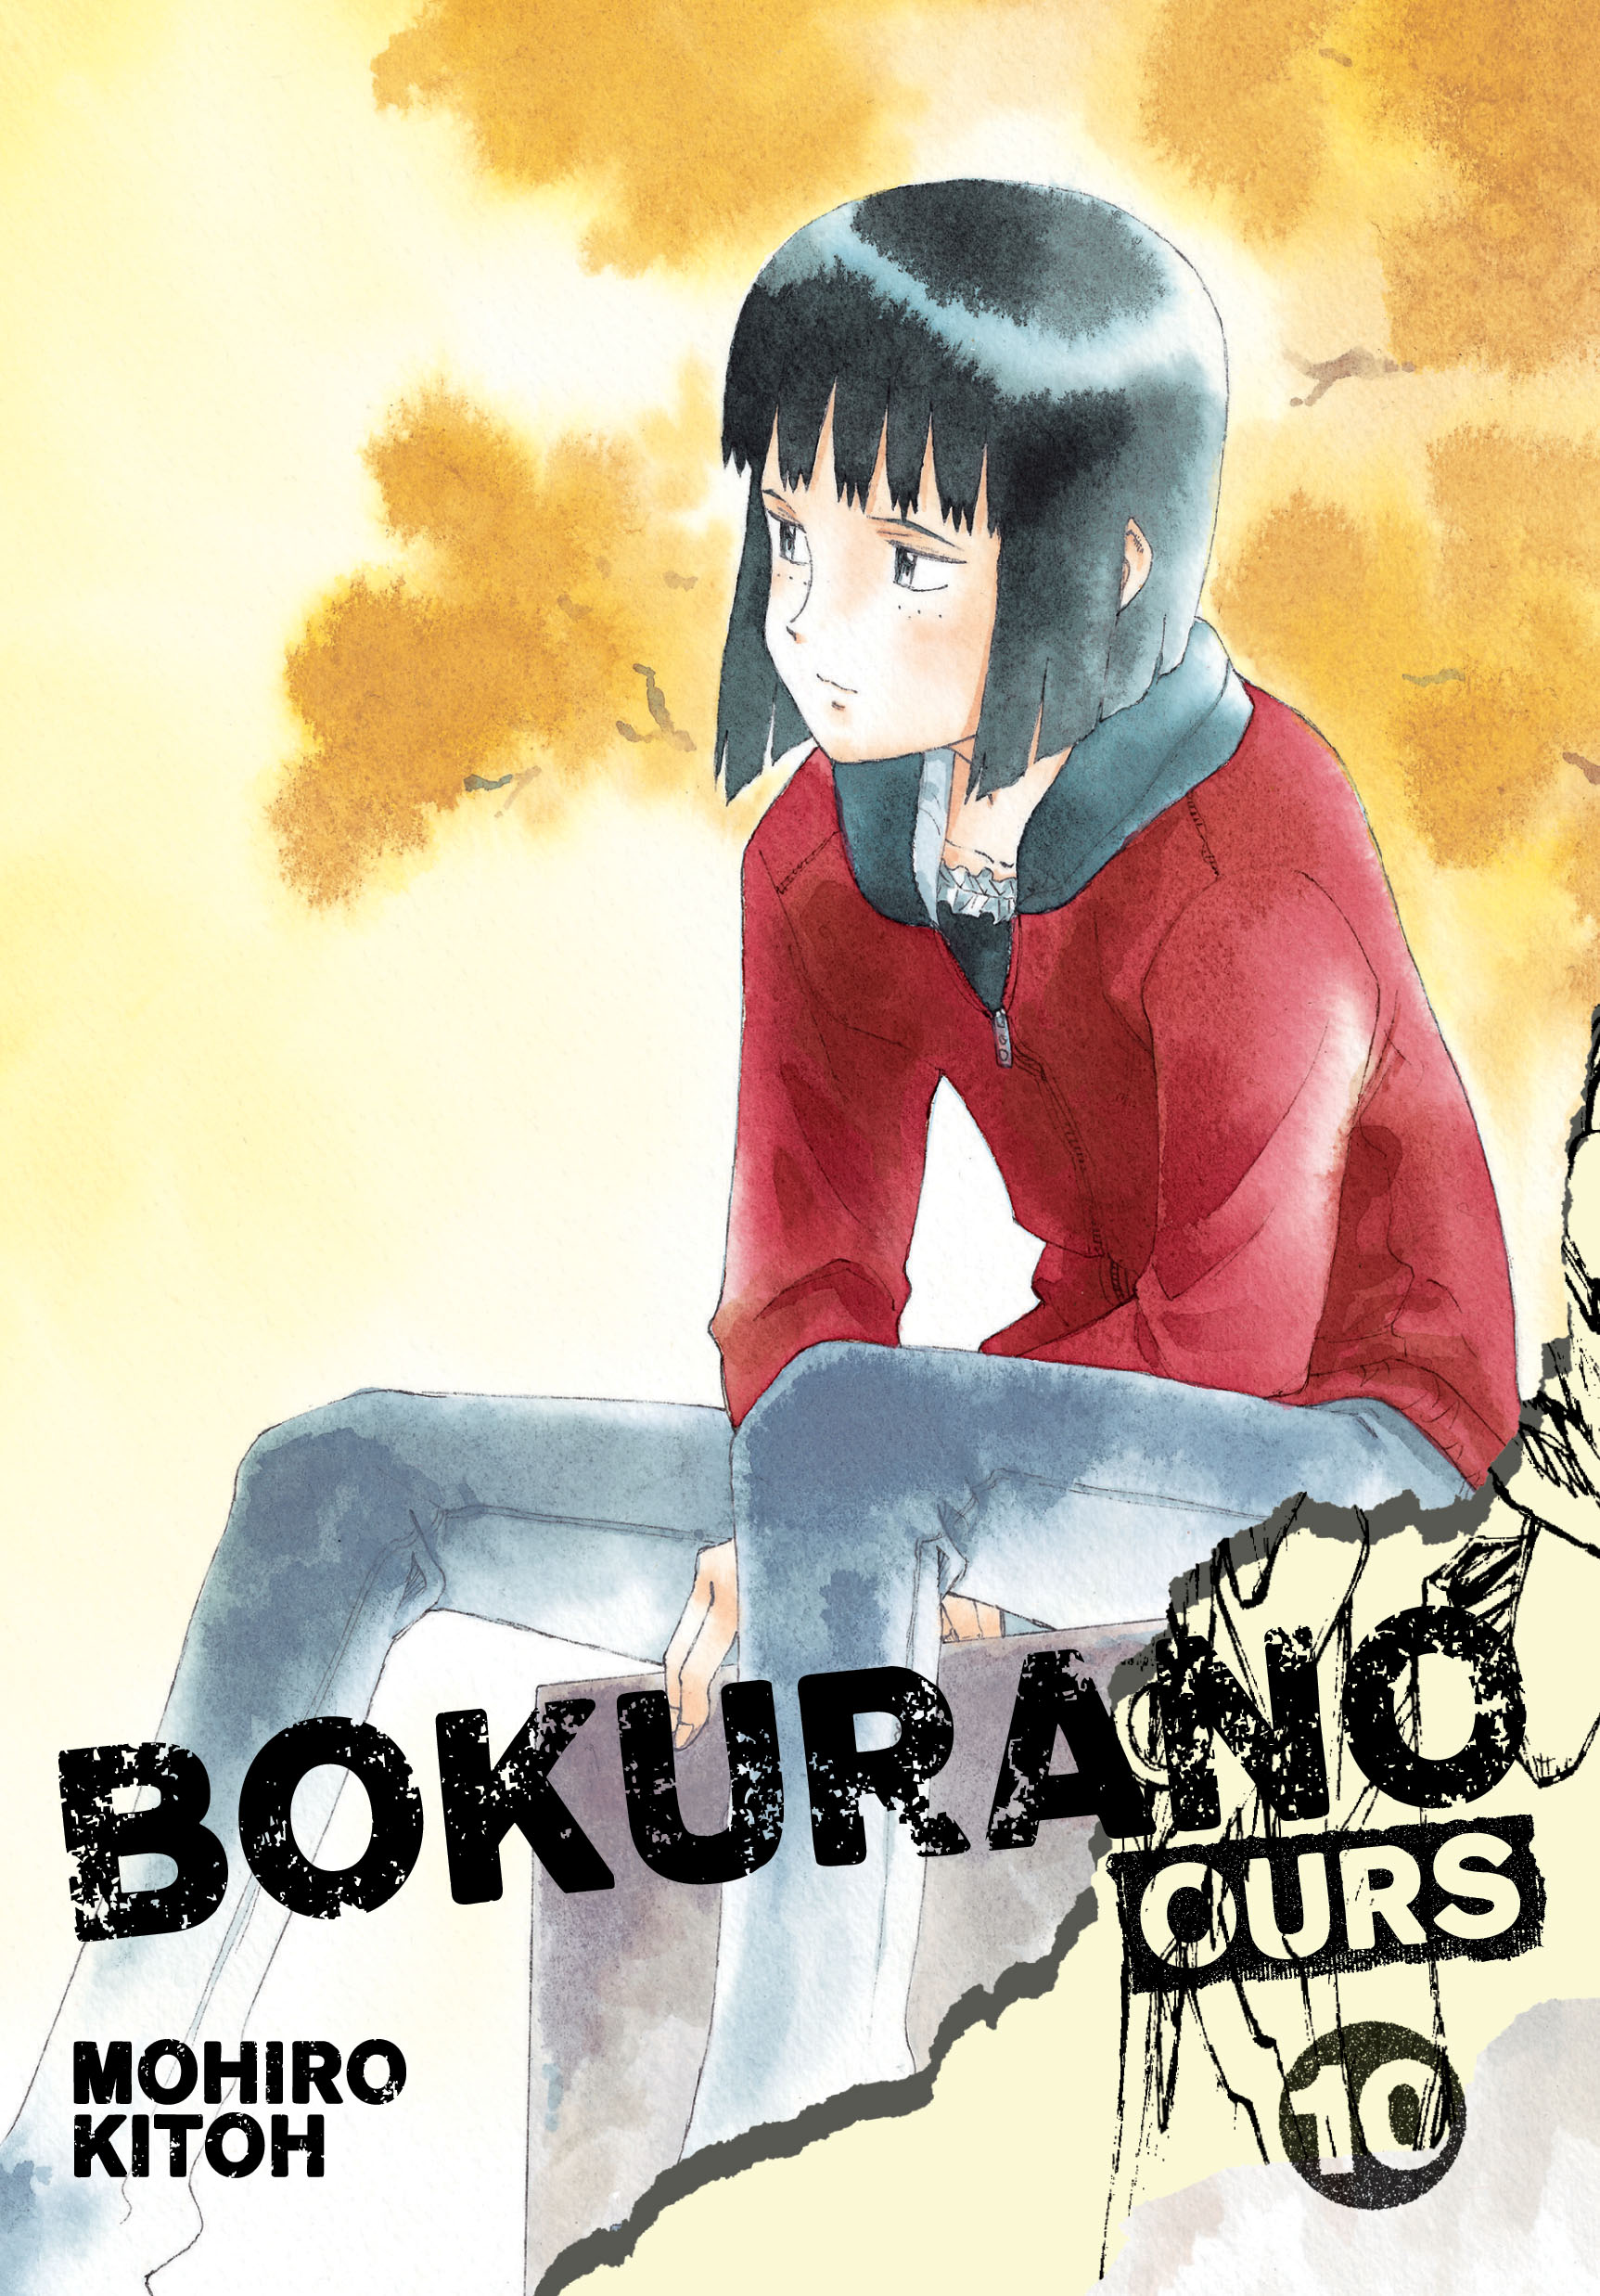 Bokurano ours vol 10 9781421535401 hr